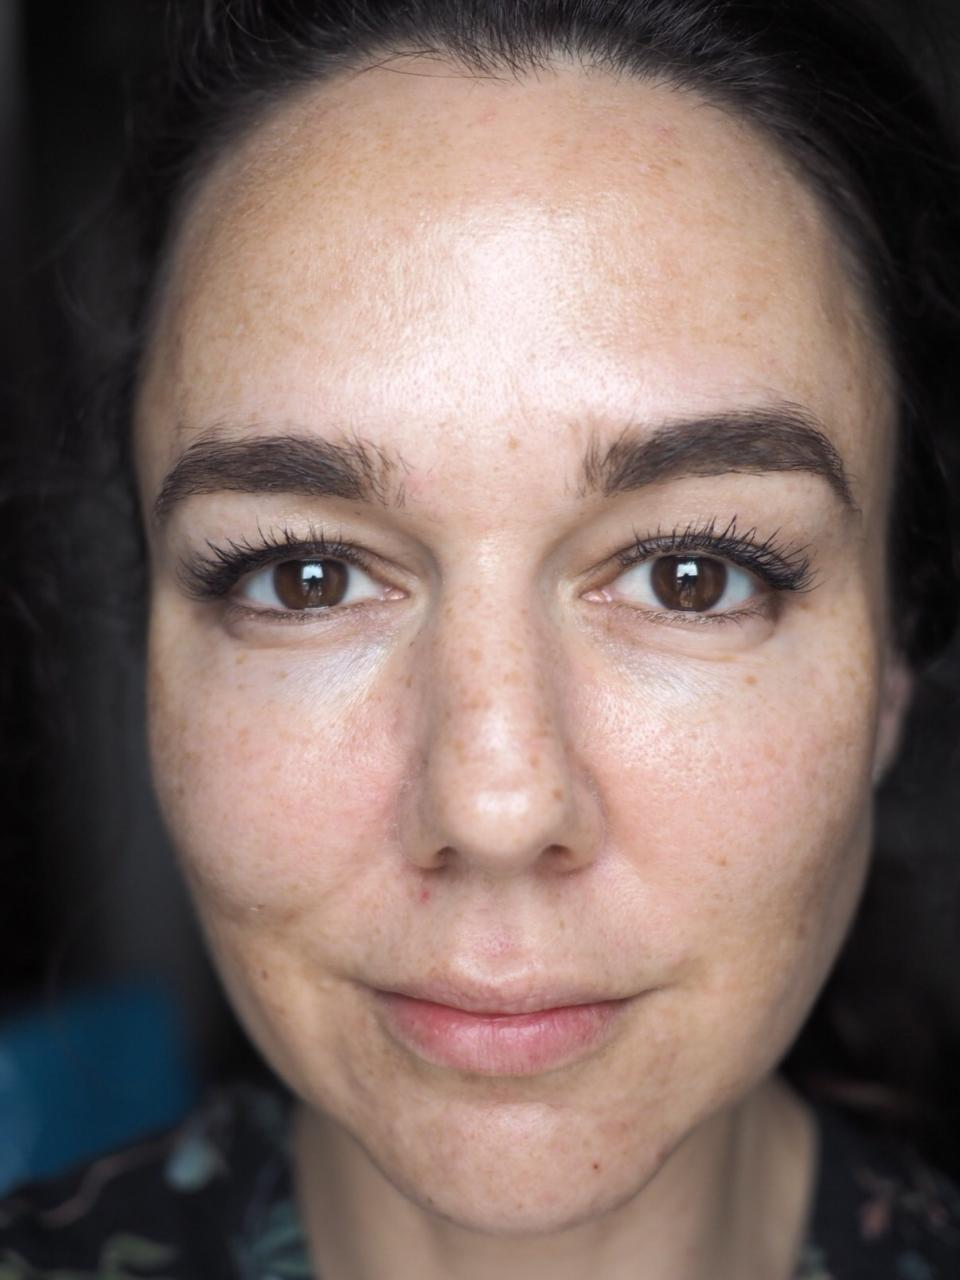 Nannic Radio Frequency Facial Treatment- the Day Before (with just a bit of brow makeup but otherwise clean face)